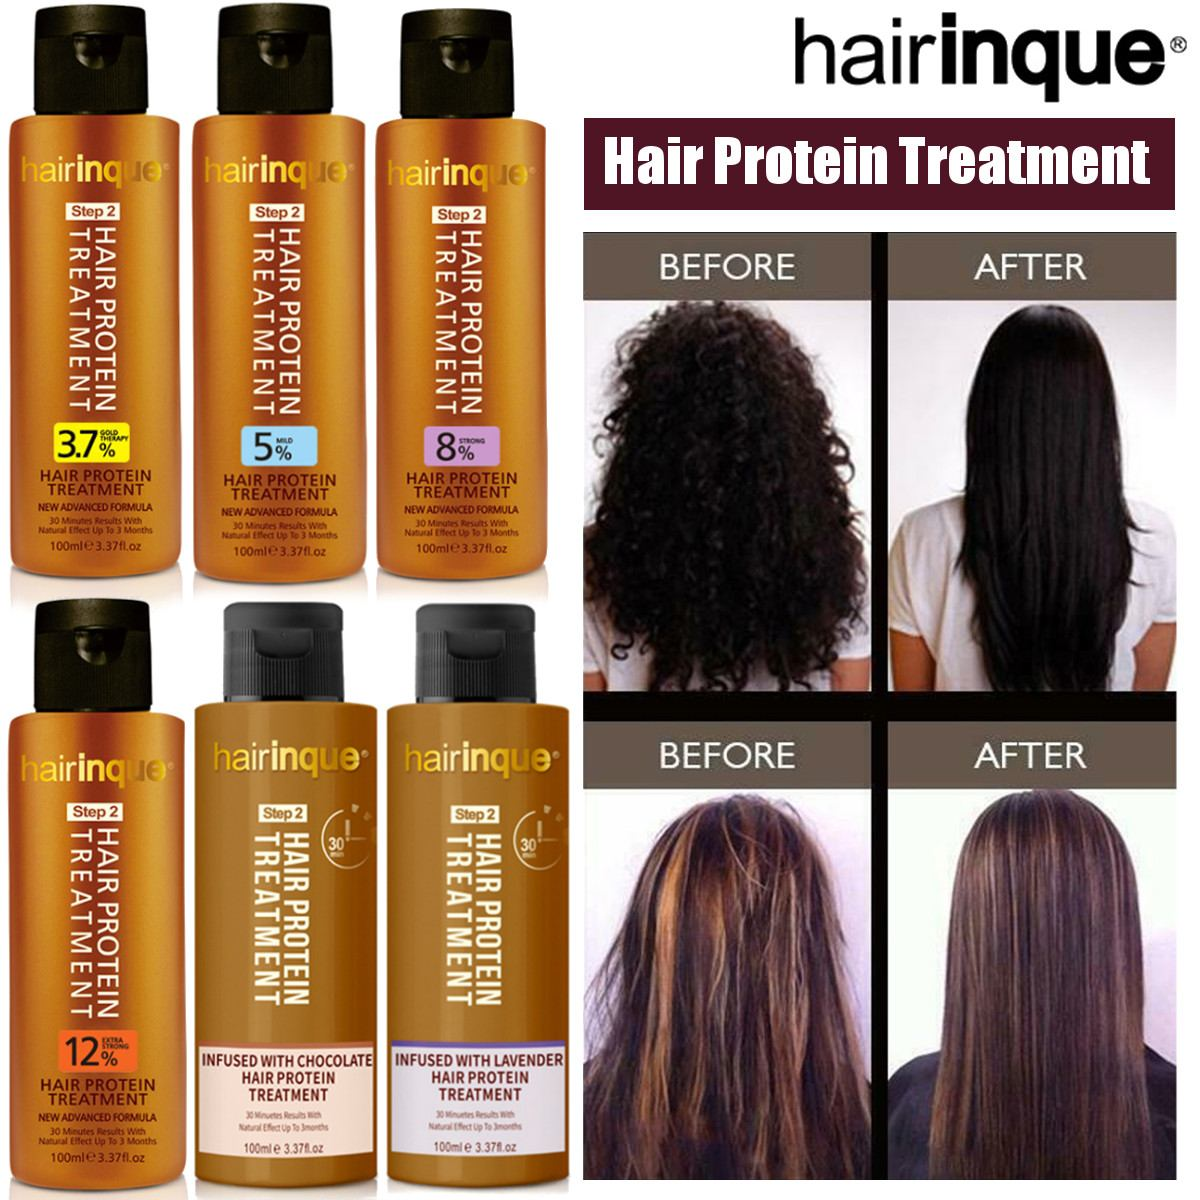 6type Keratin Hair Protein Treatment Purifying Shampoo and Conditioner for Frizzy Damage Hair Repair Hair Straighten 100ml image